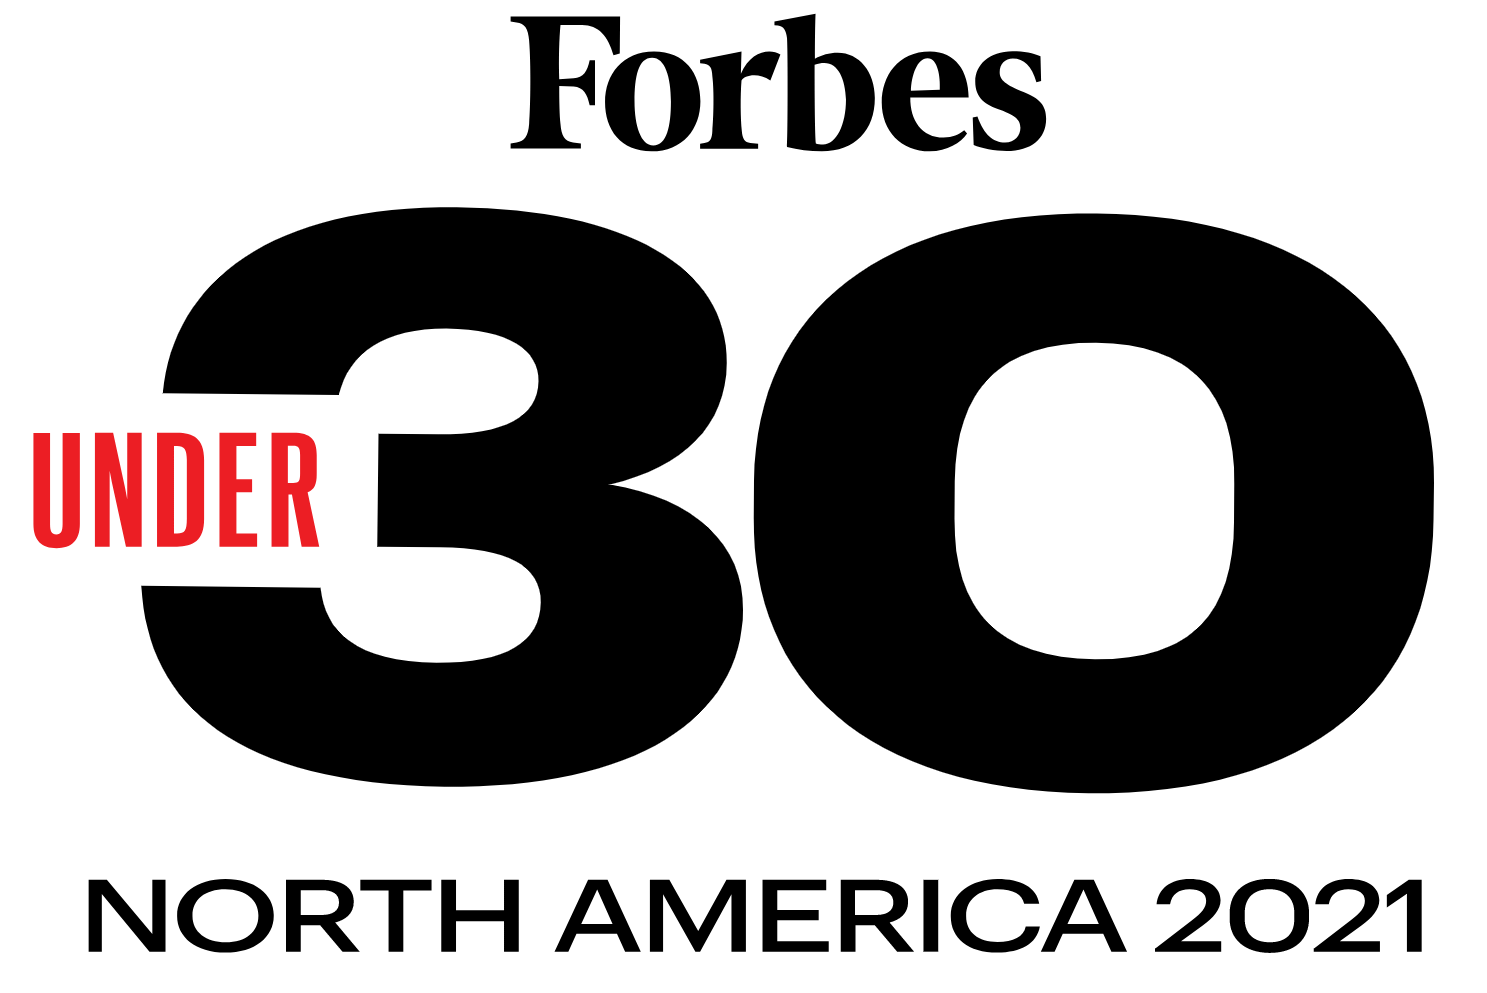 Forbes 30 under 30 North America 2021 graphic